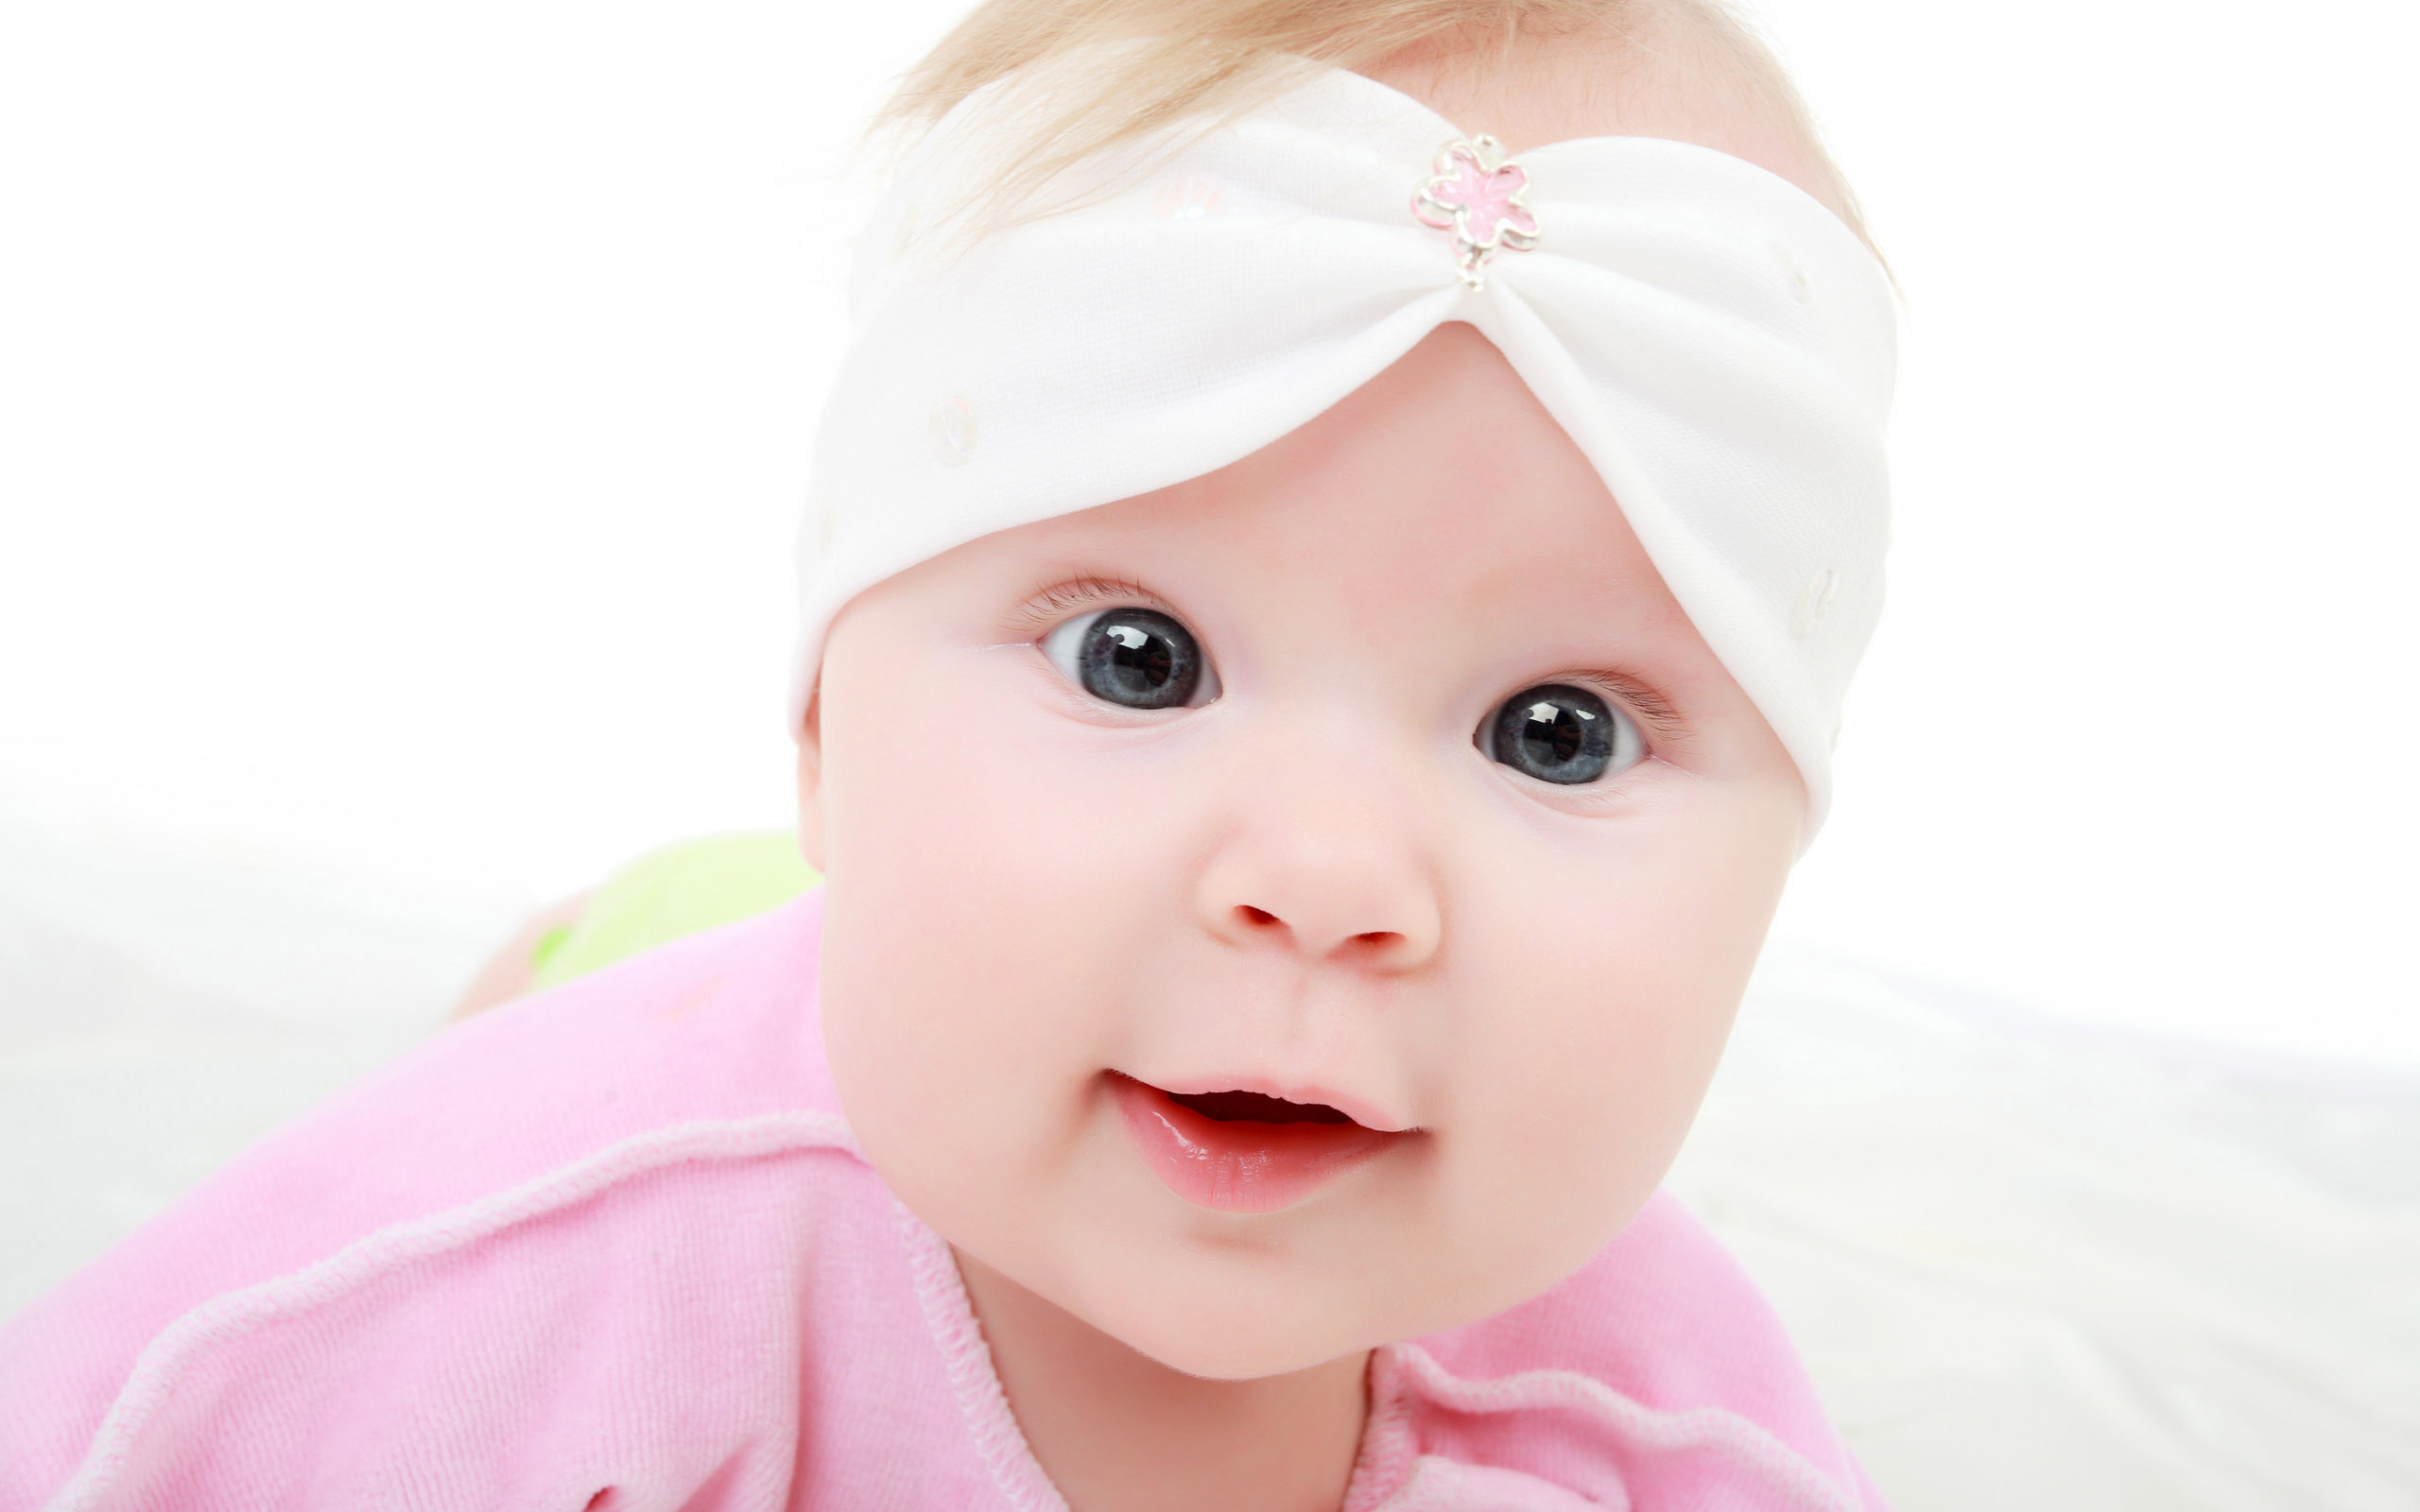 Smiling baby cute hd wallpapers